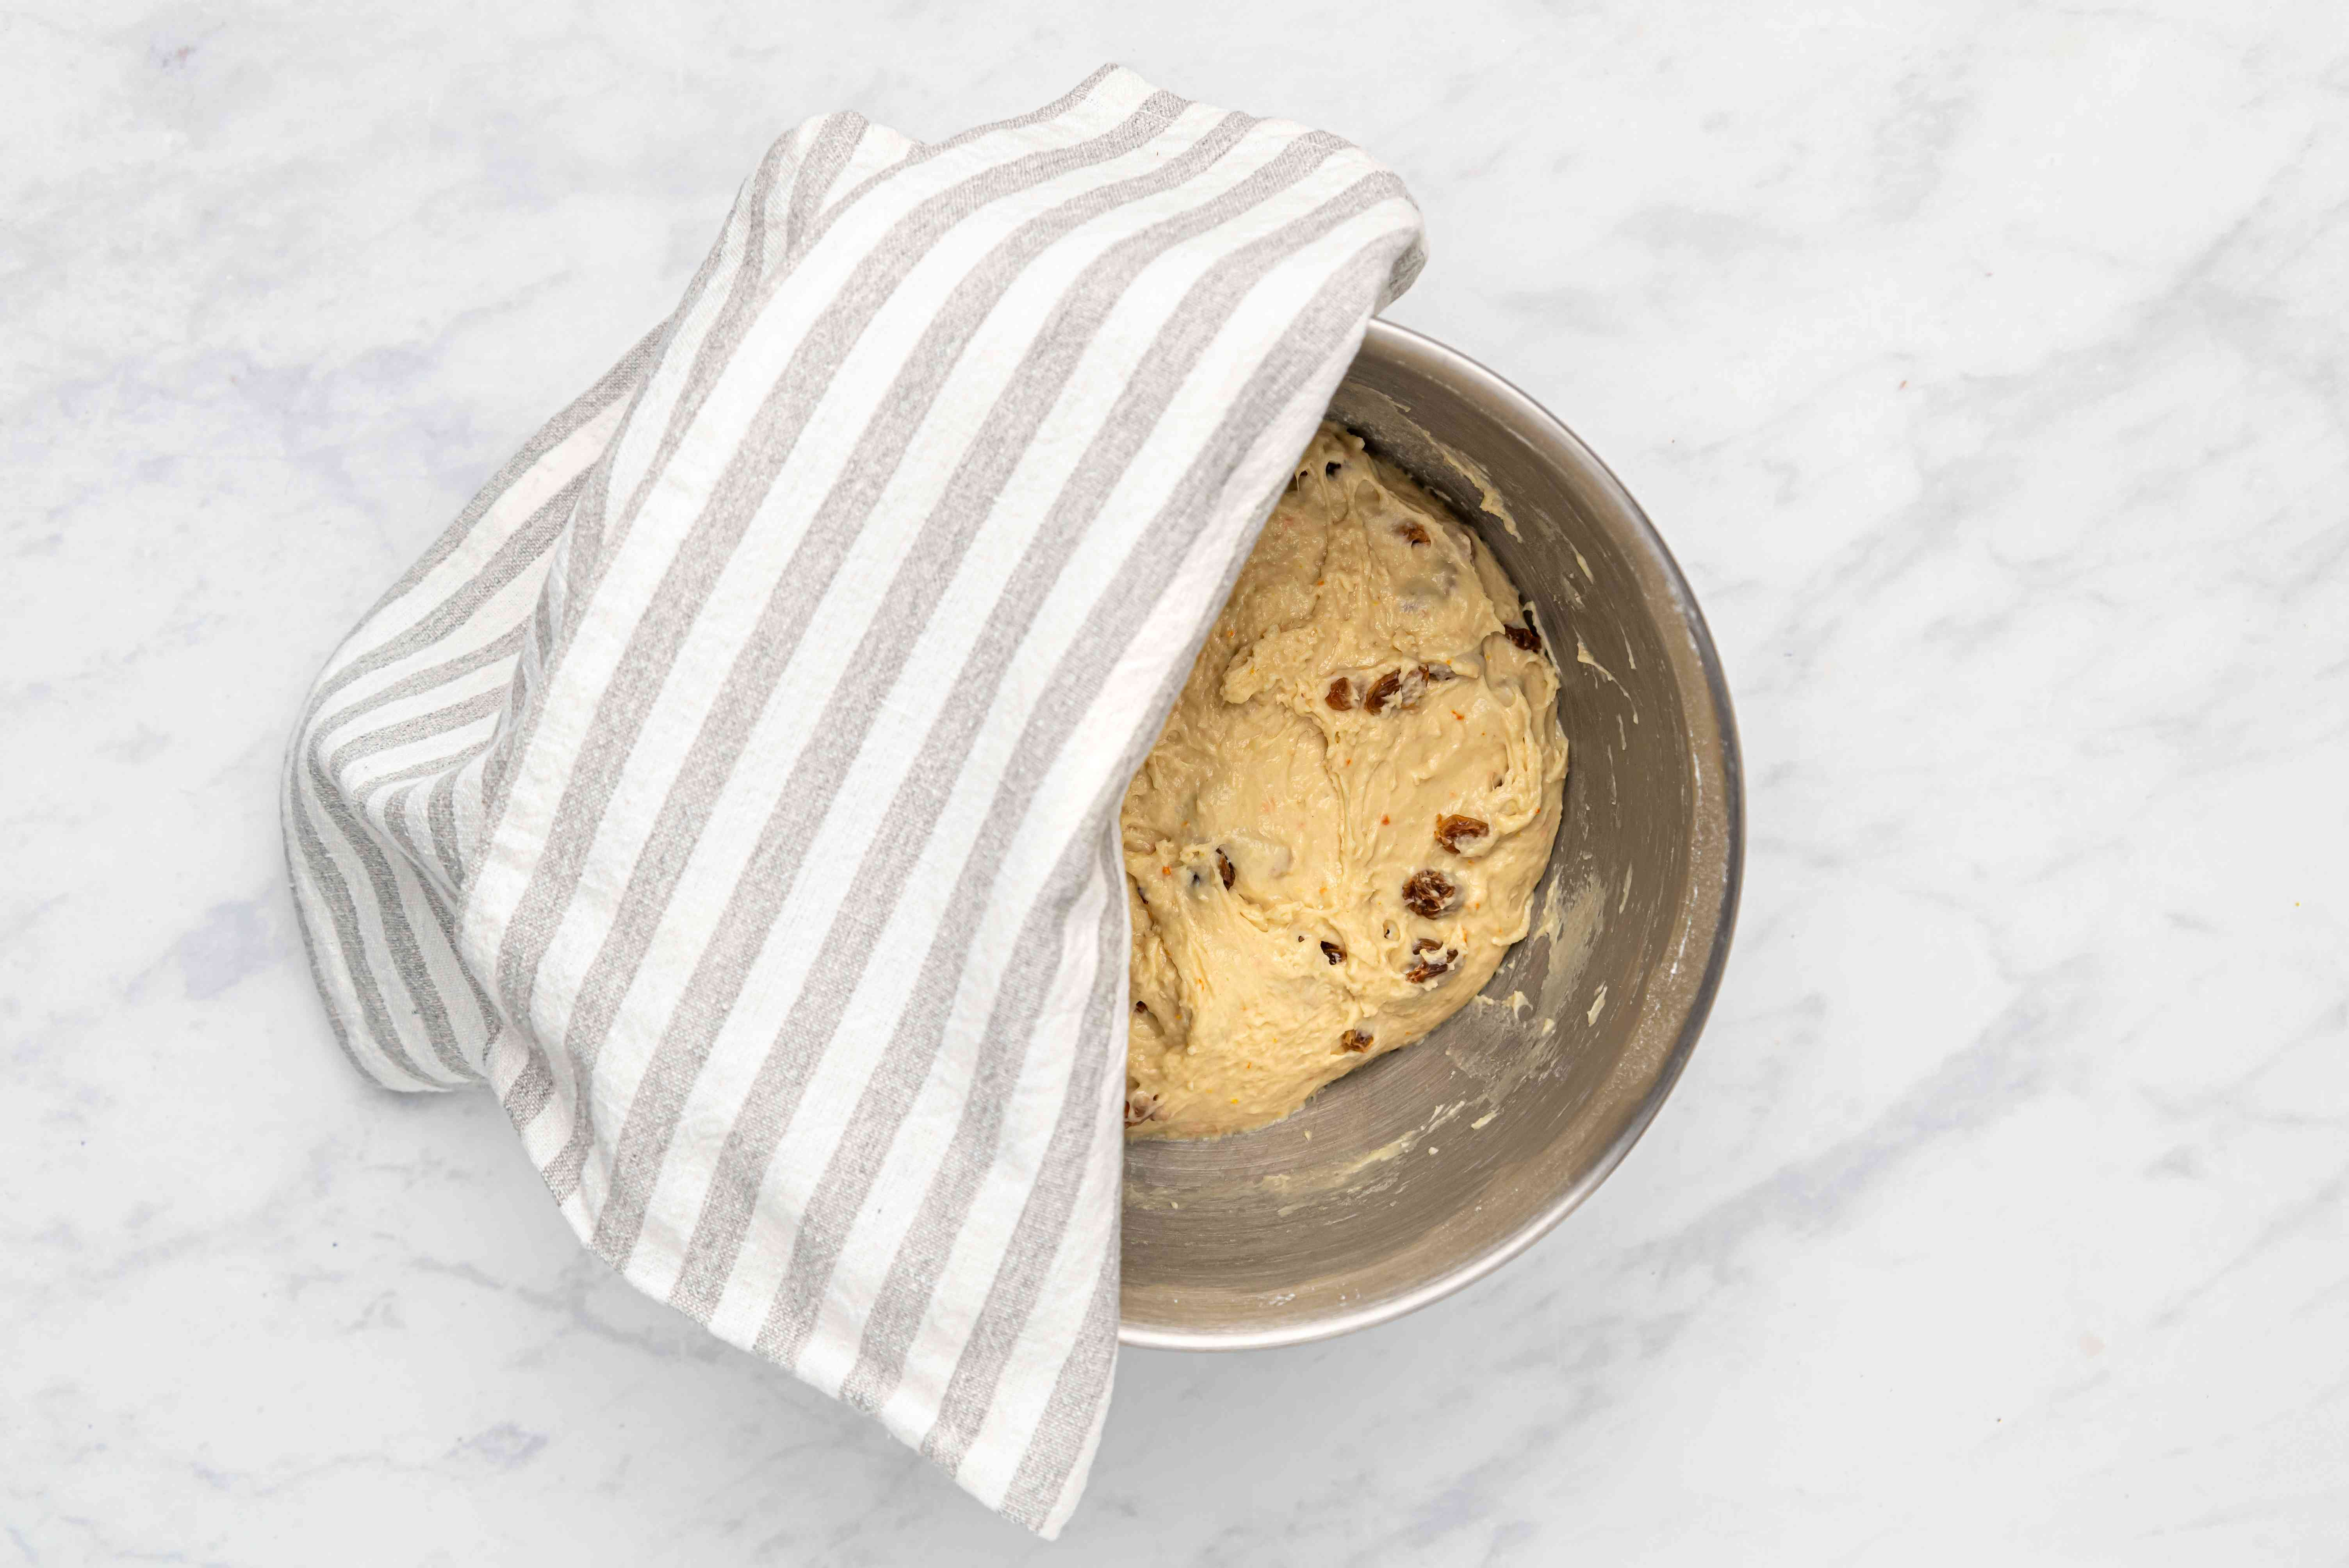 cover dough in the bowl with a towel